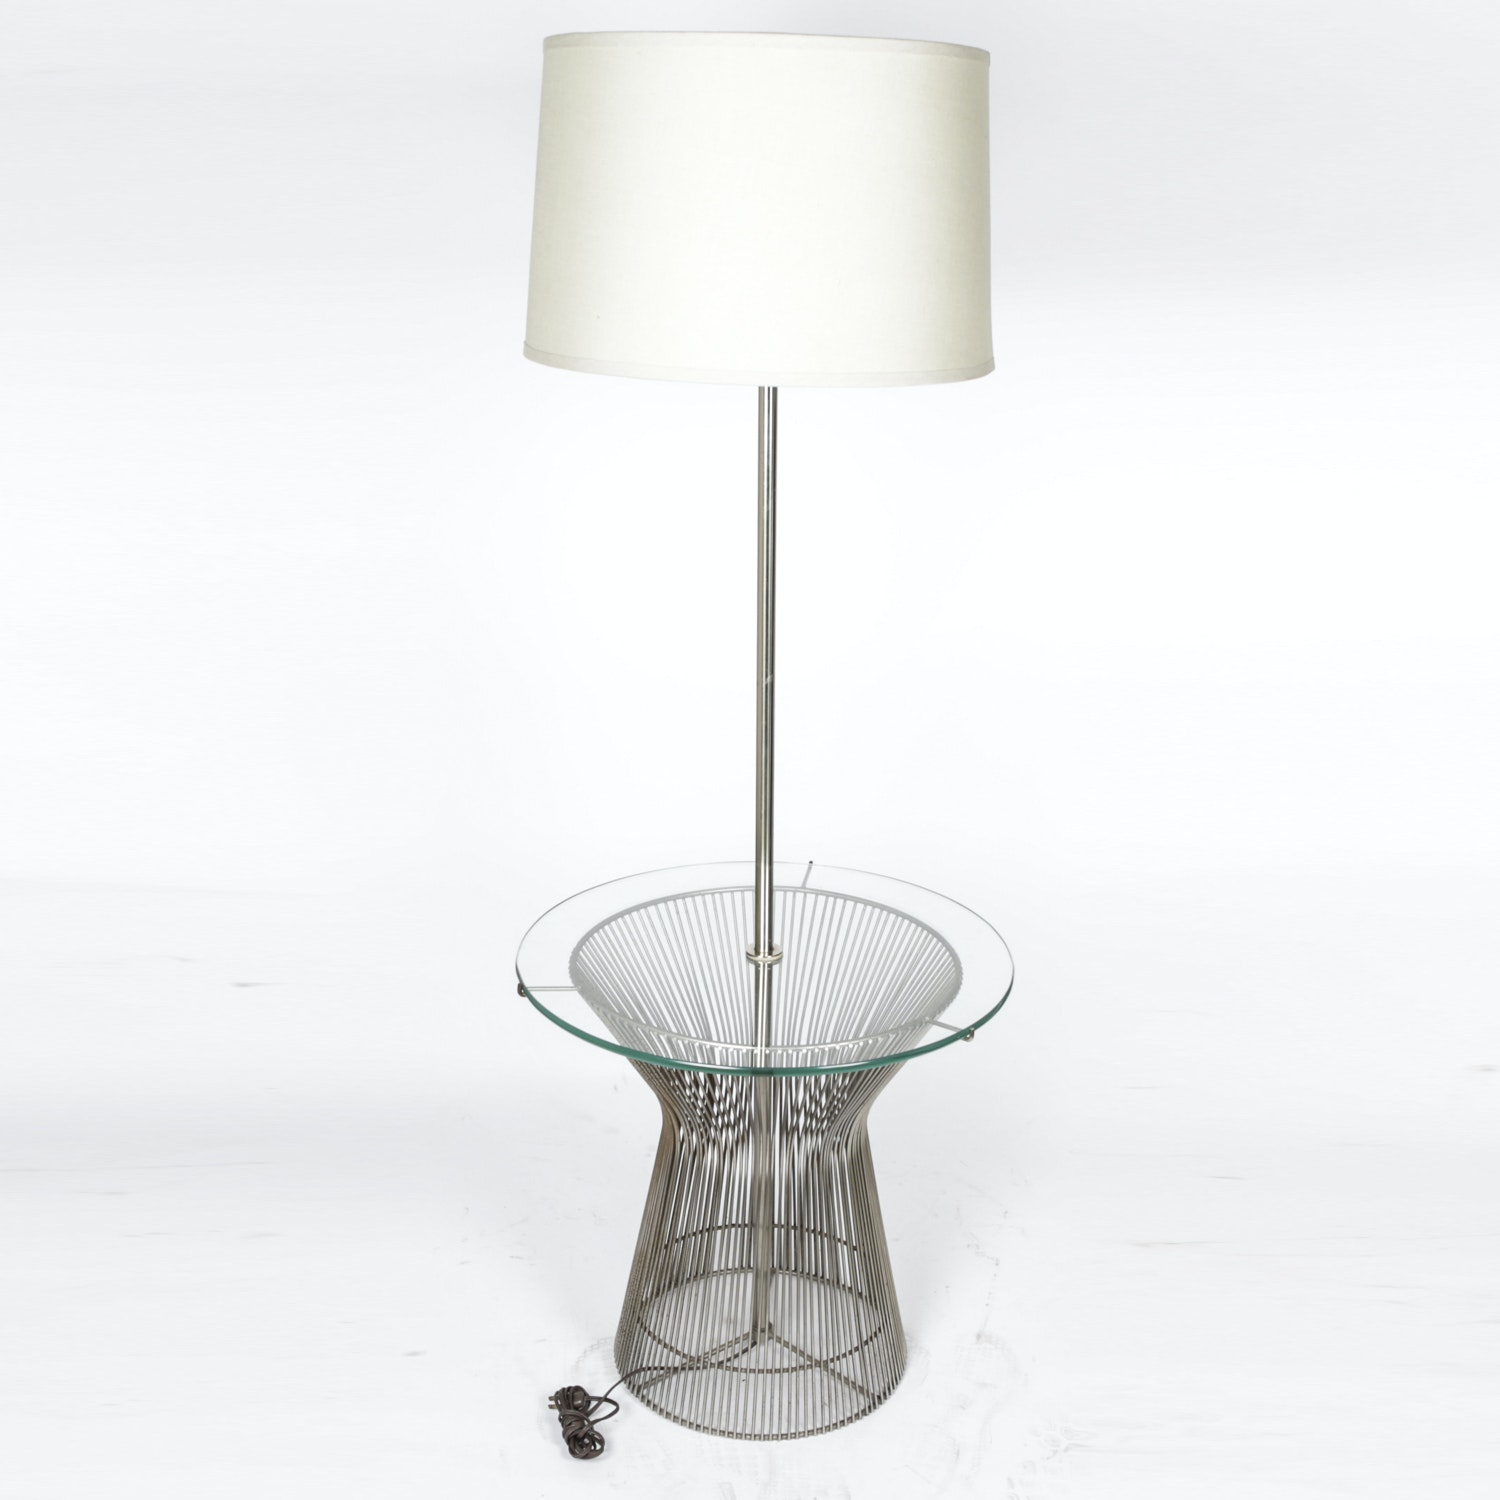 Modern Tray Table Floor Lamp with Wire Base